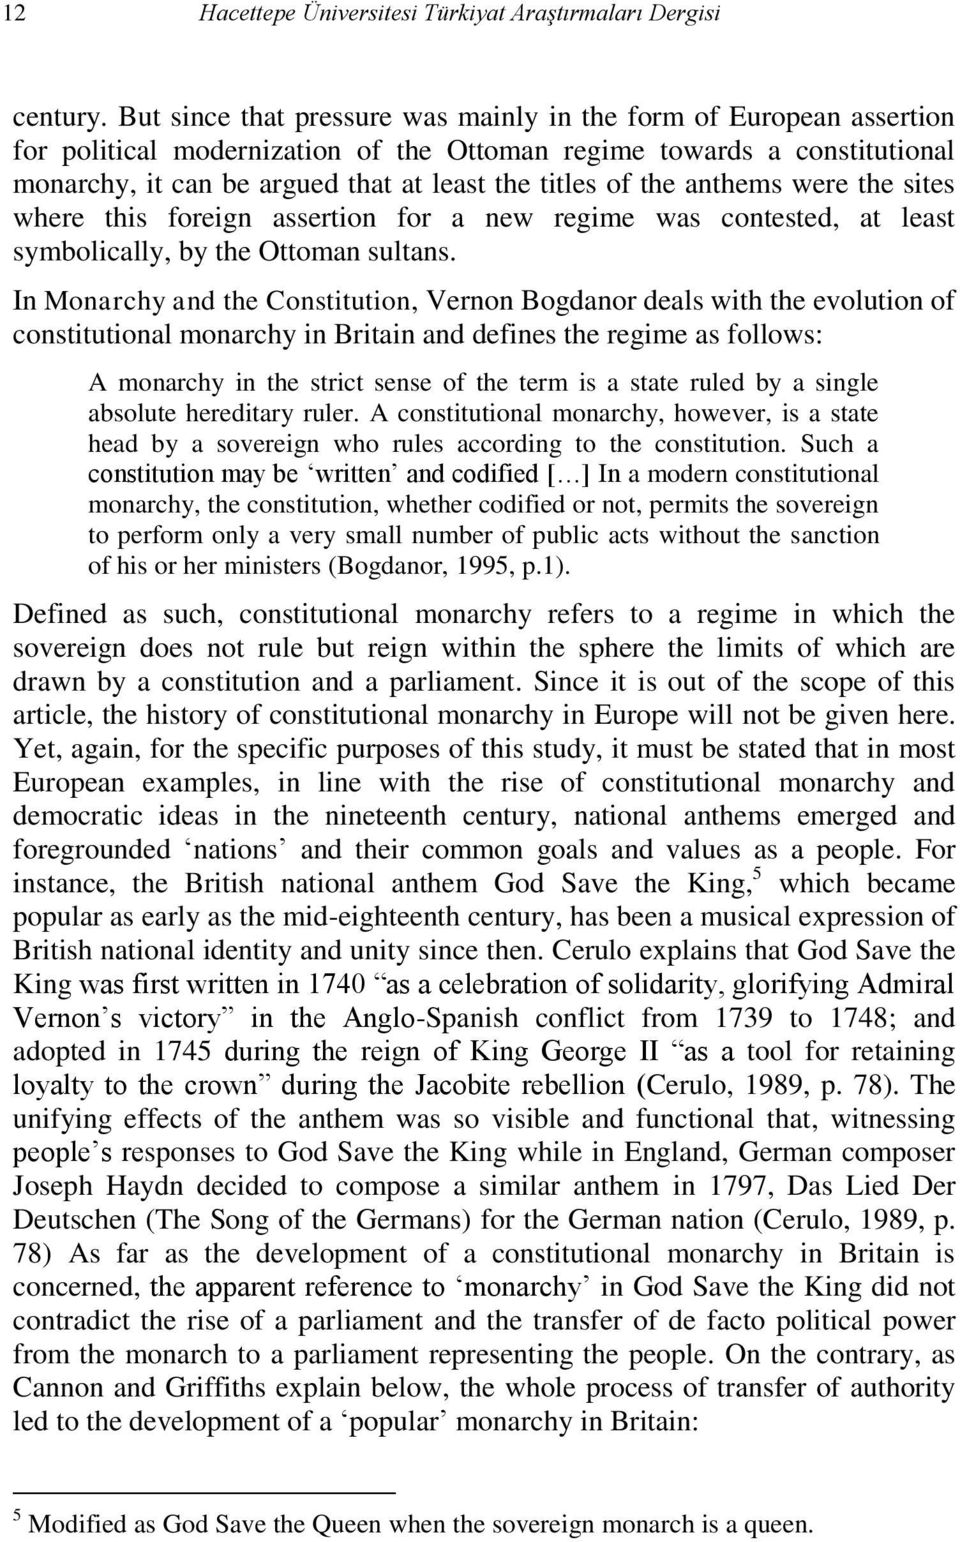 the anthems were the sites where this foreign assertion for a new regime was contested, at least symbolically, by the Ottoman sultans.